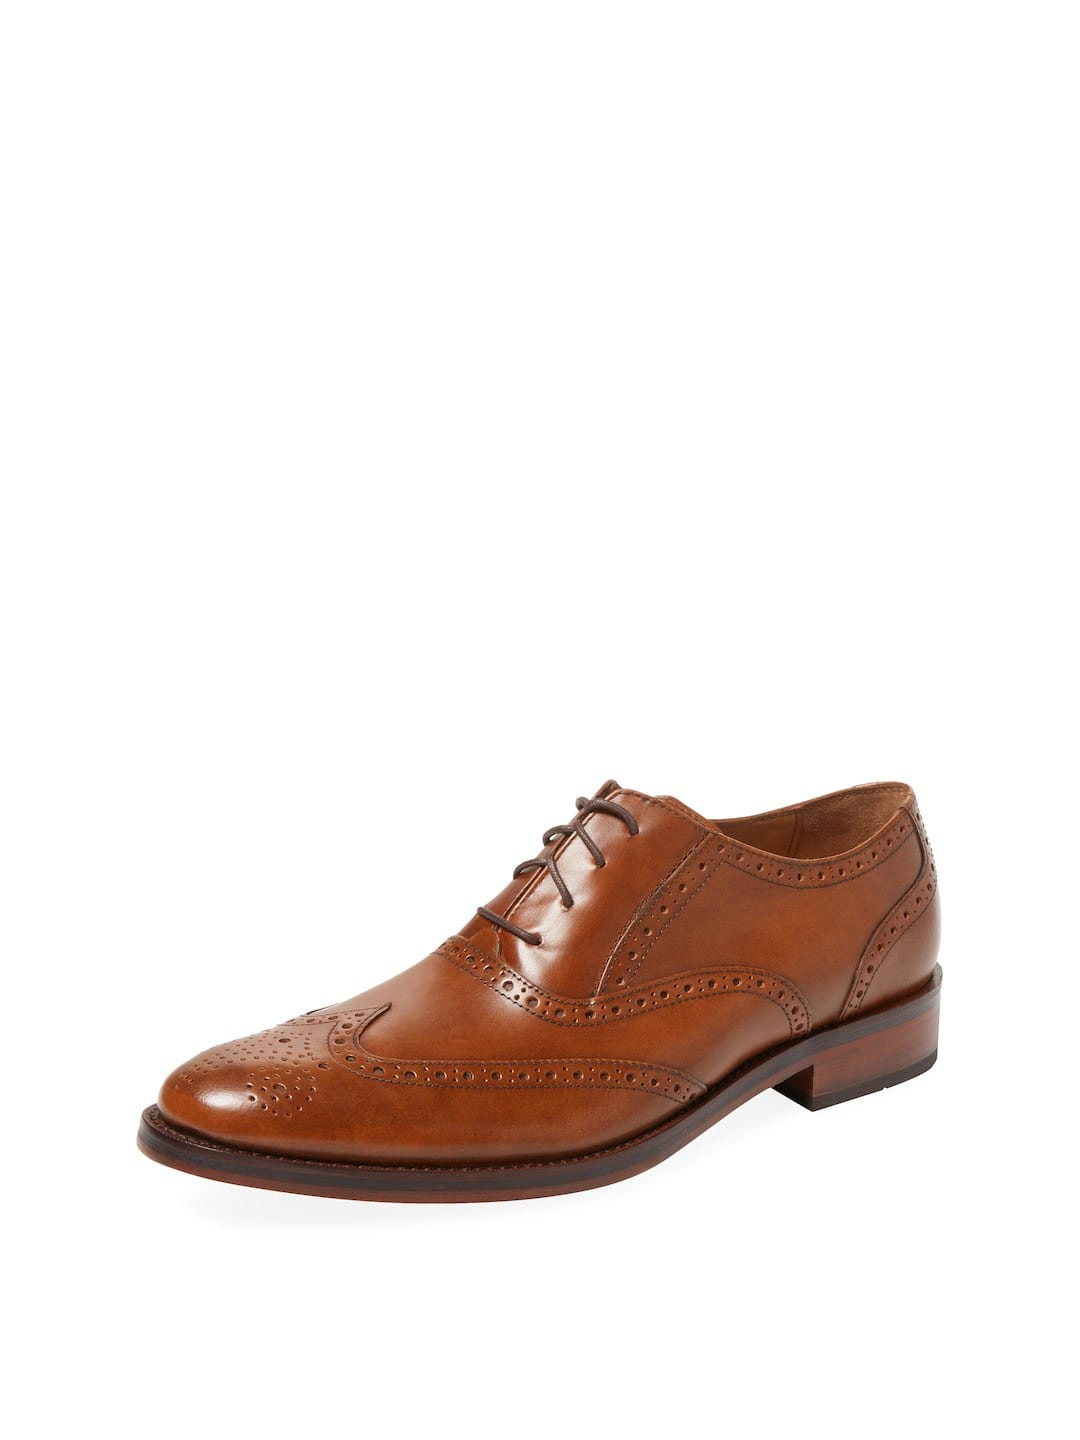 Cole Haan Madison Bal Wing II Oxford - Tan (Size 7, 7.5 and 8 only) $63 with promo code SHOE30 at Gilt.com $62.98; other men's shoes on sale at 30% off